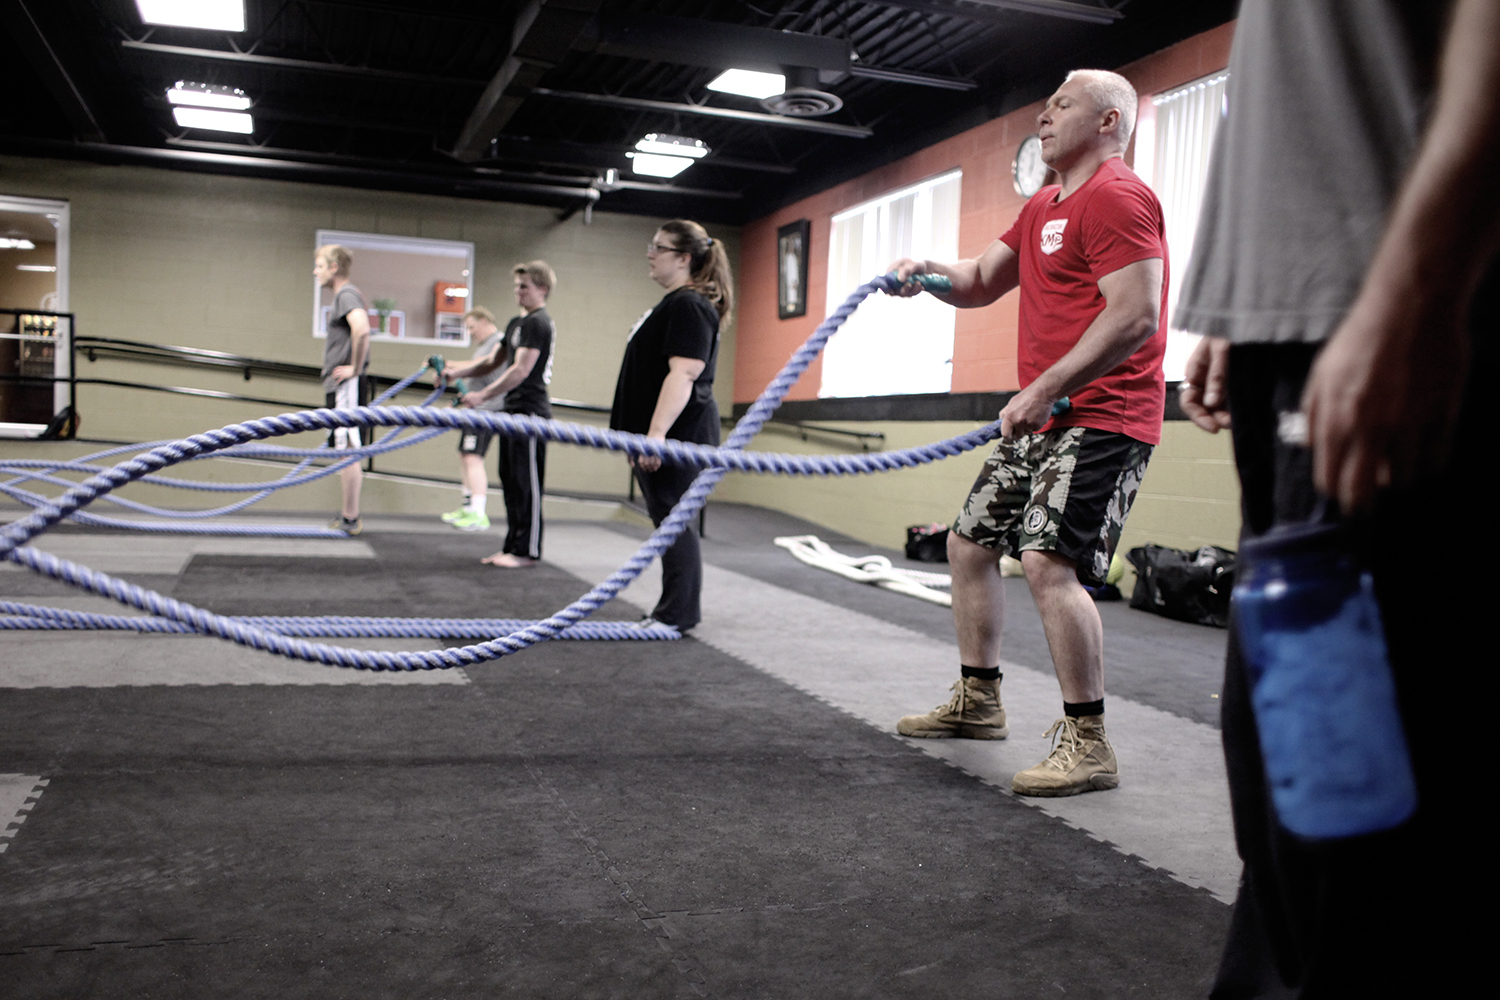 The Battling Ropes Seminar at Krav Maga Detroit on May 11, 2013.